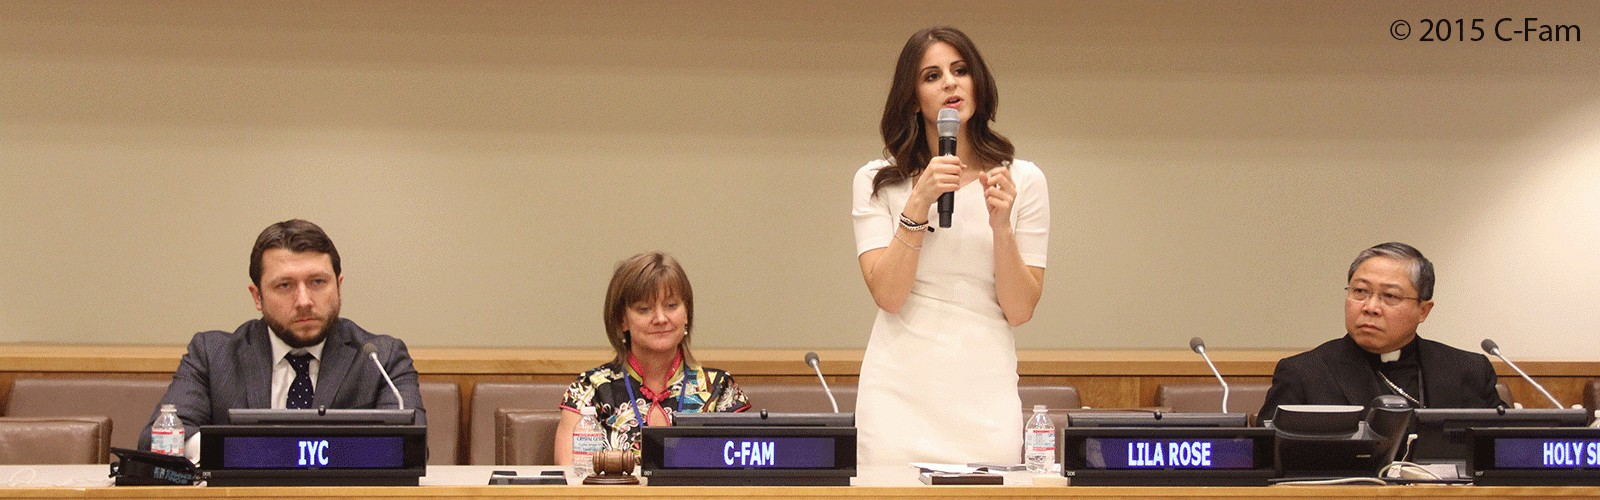 Lila-Rose-CSW-Side-Event-1600x500-1